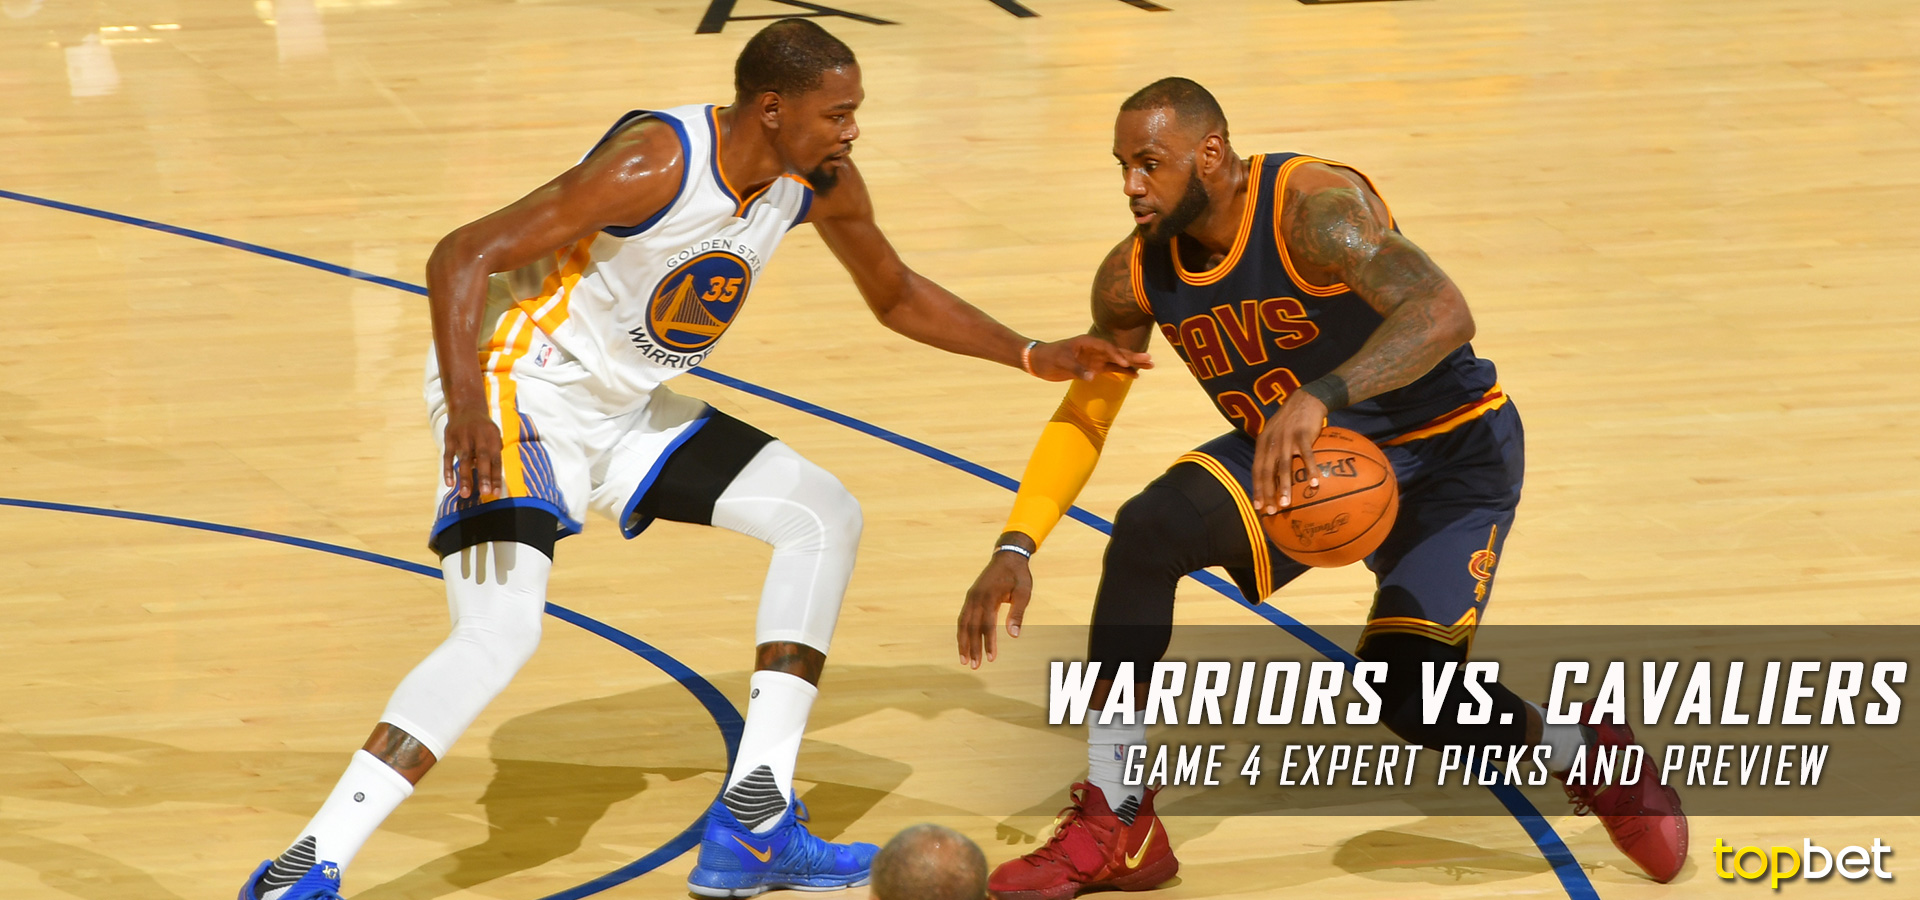 Resultado de imagem para Golden State Warriors vs Cleveland Cavaliers Game 4 - The NBA Finals 2017